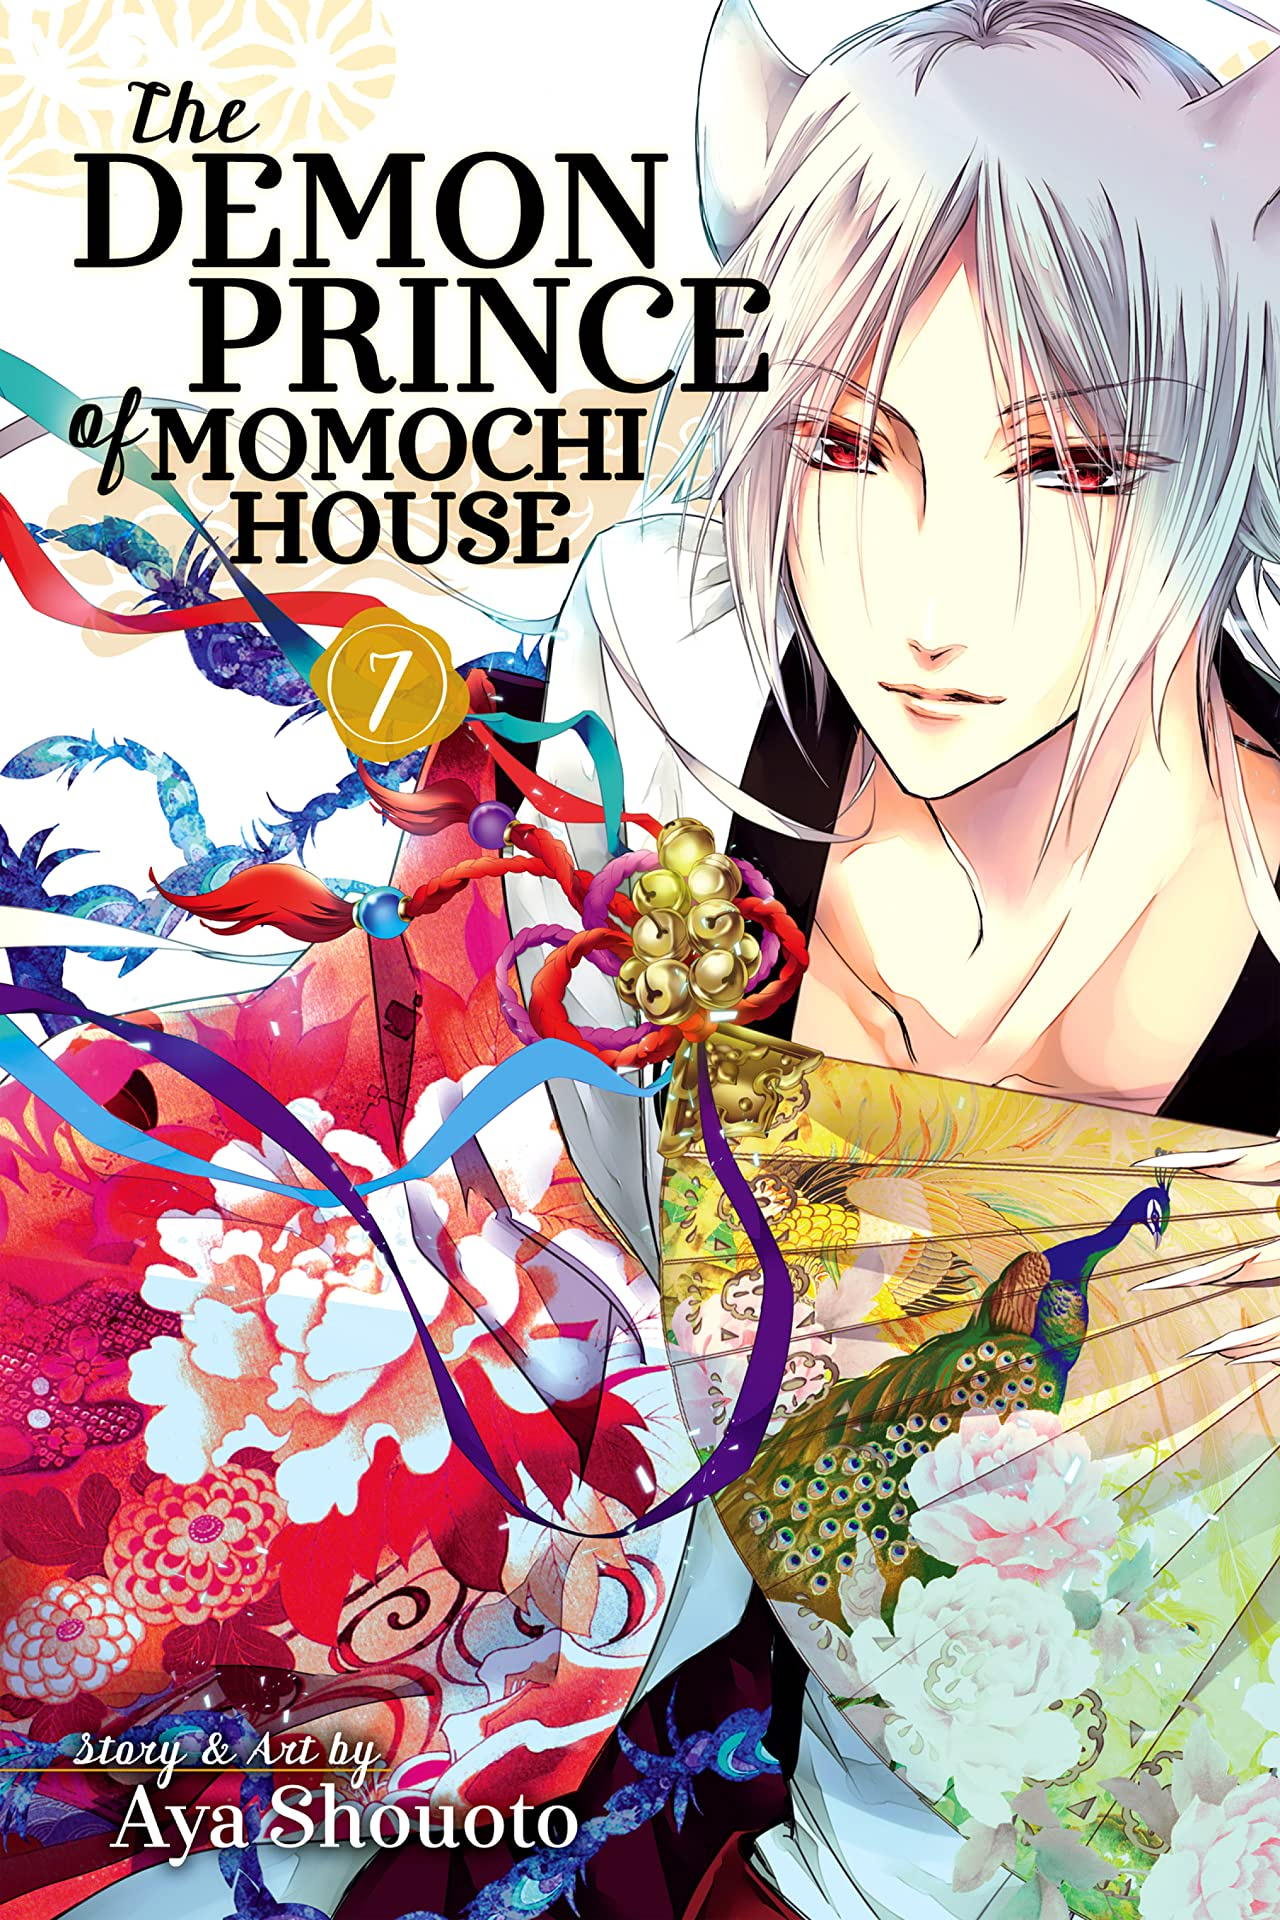 The Demon Prince of Momochi House Vol. 7